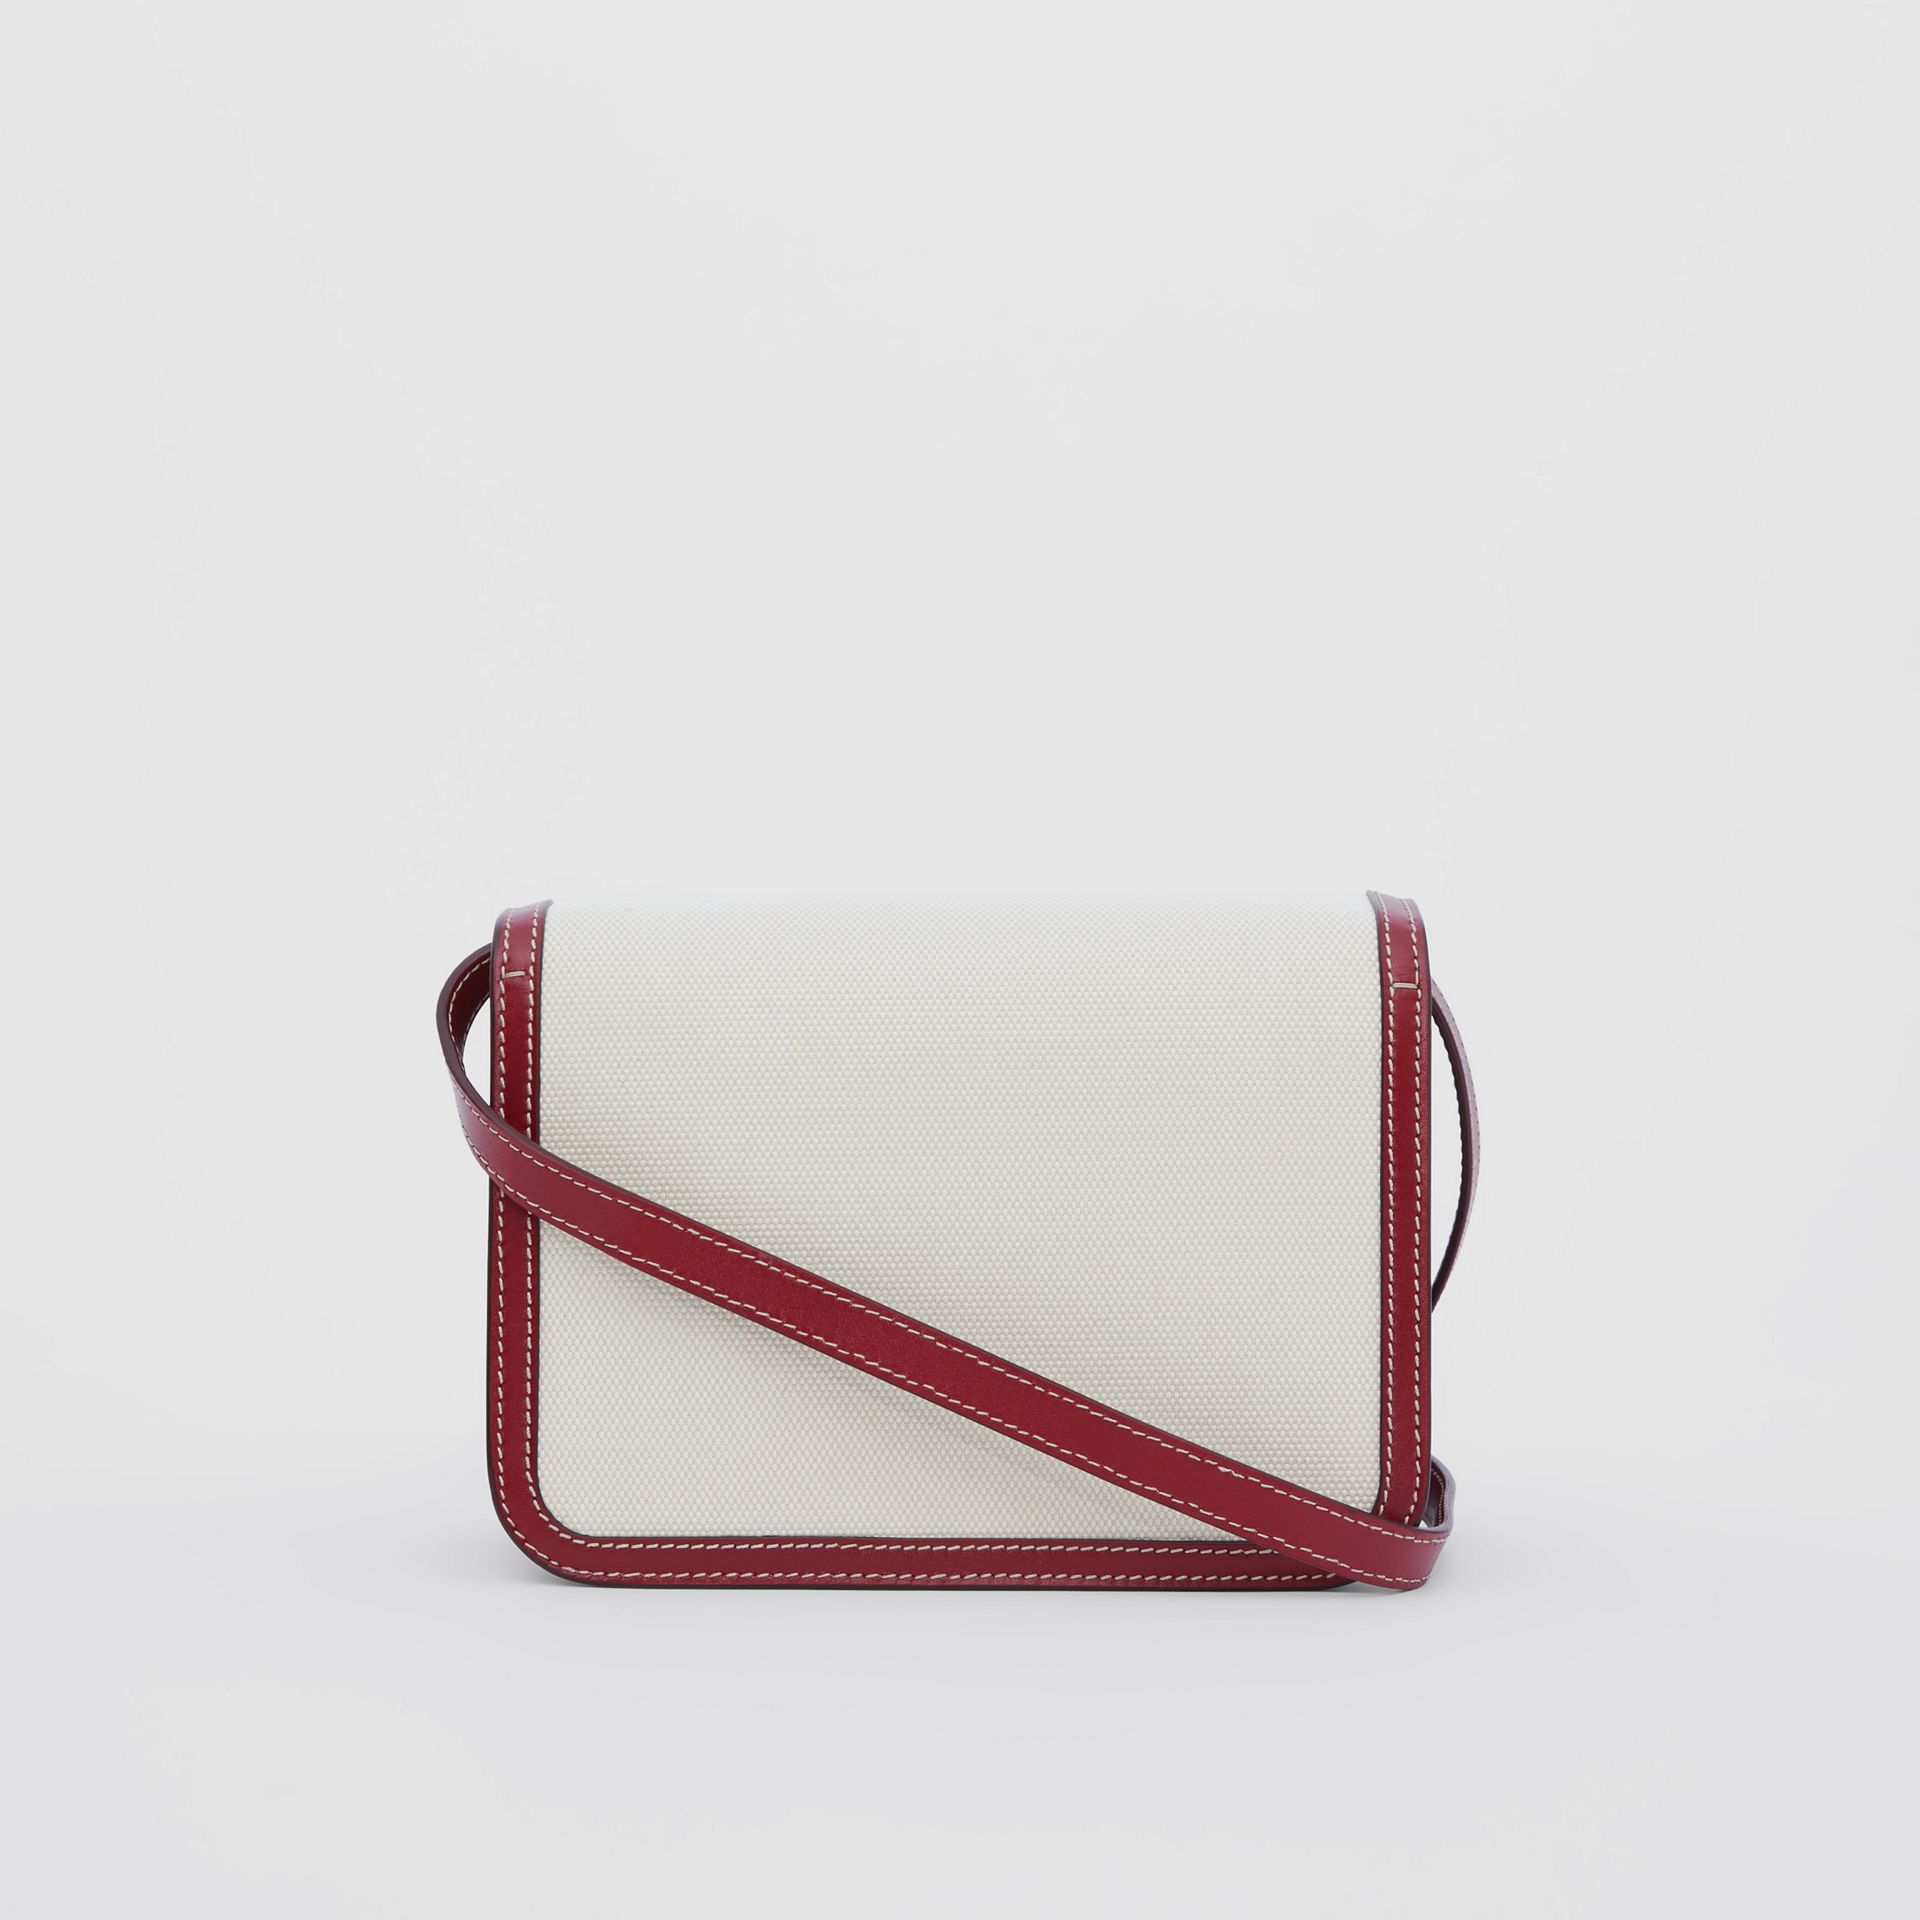 Small Two-tone Canvas and Leather TB Bag in Natural/dark Carmine - Women | Burberry Hong Kong S.A.R - gallery image 6